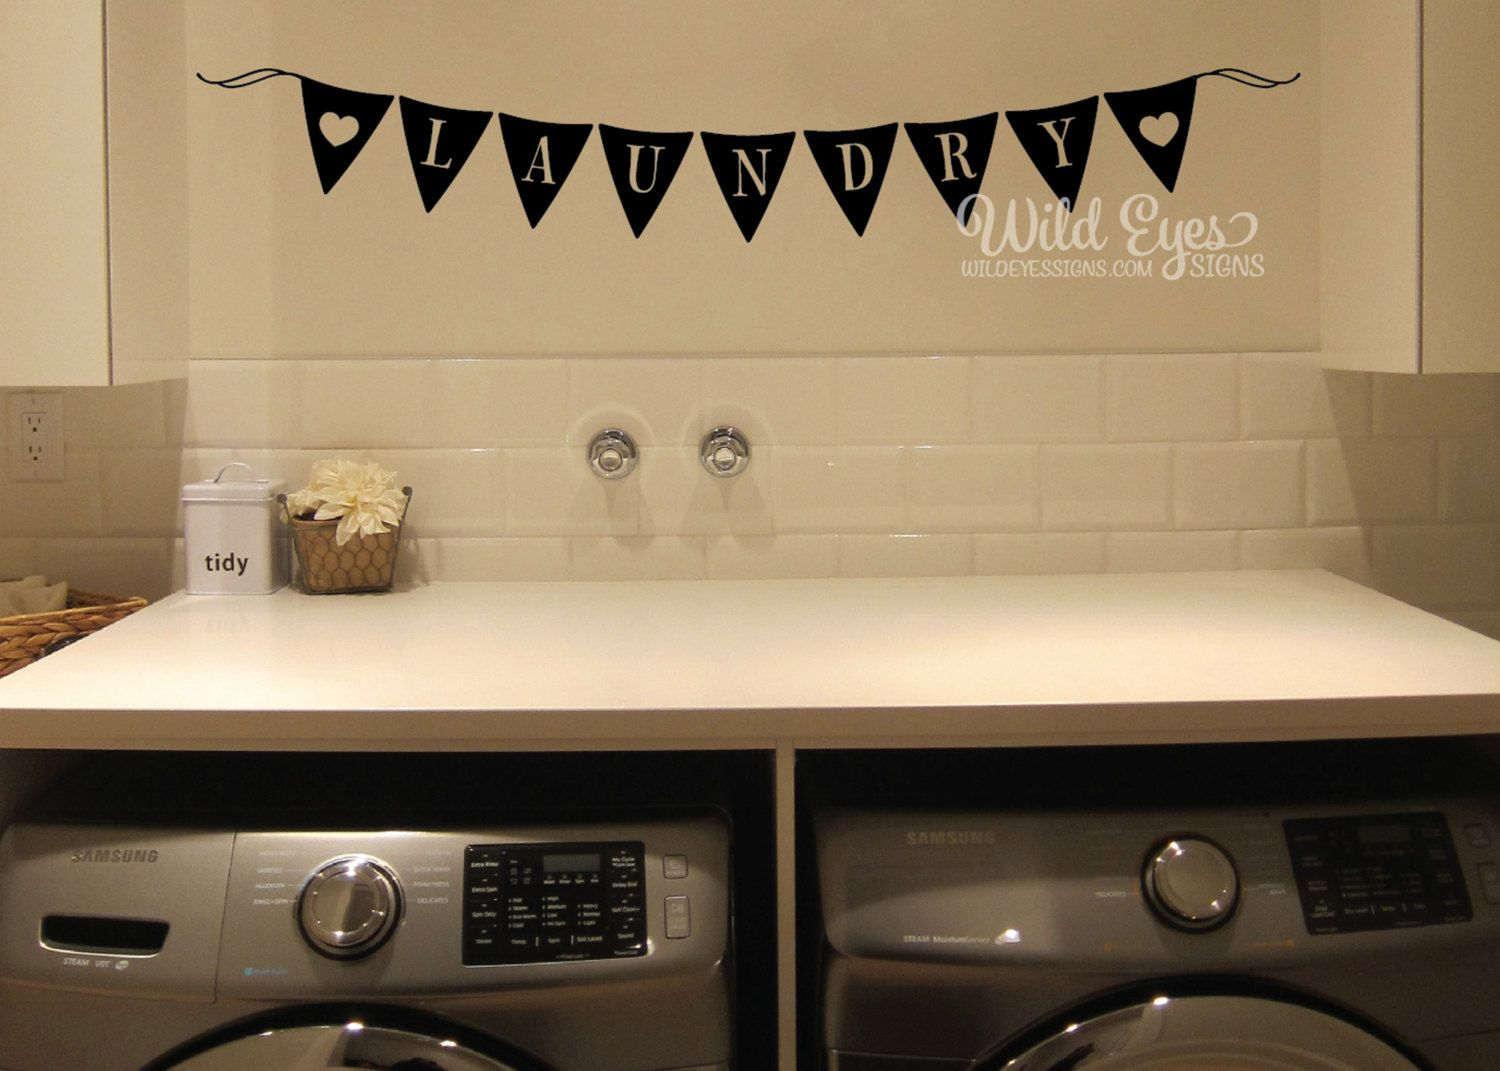 Laundry Wall Decal, Laundry Sign, pennant banner, Flag Banner ...